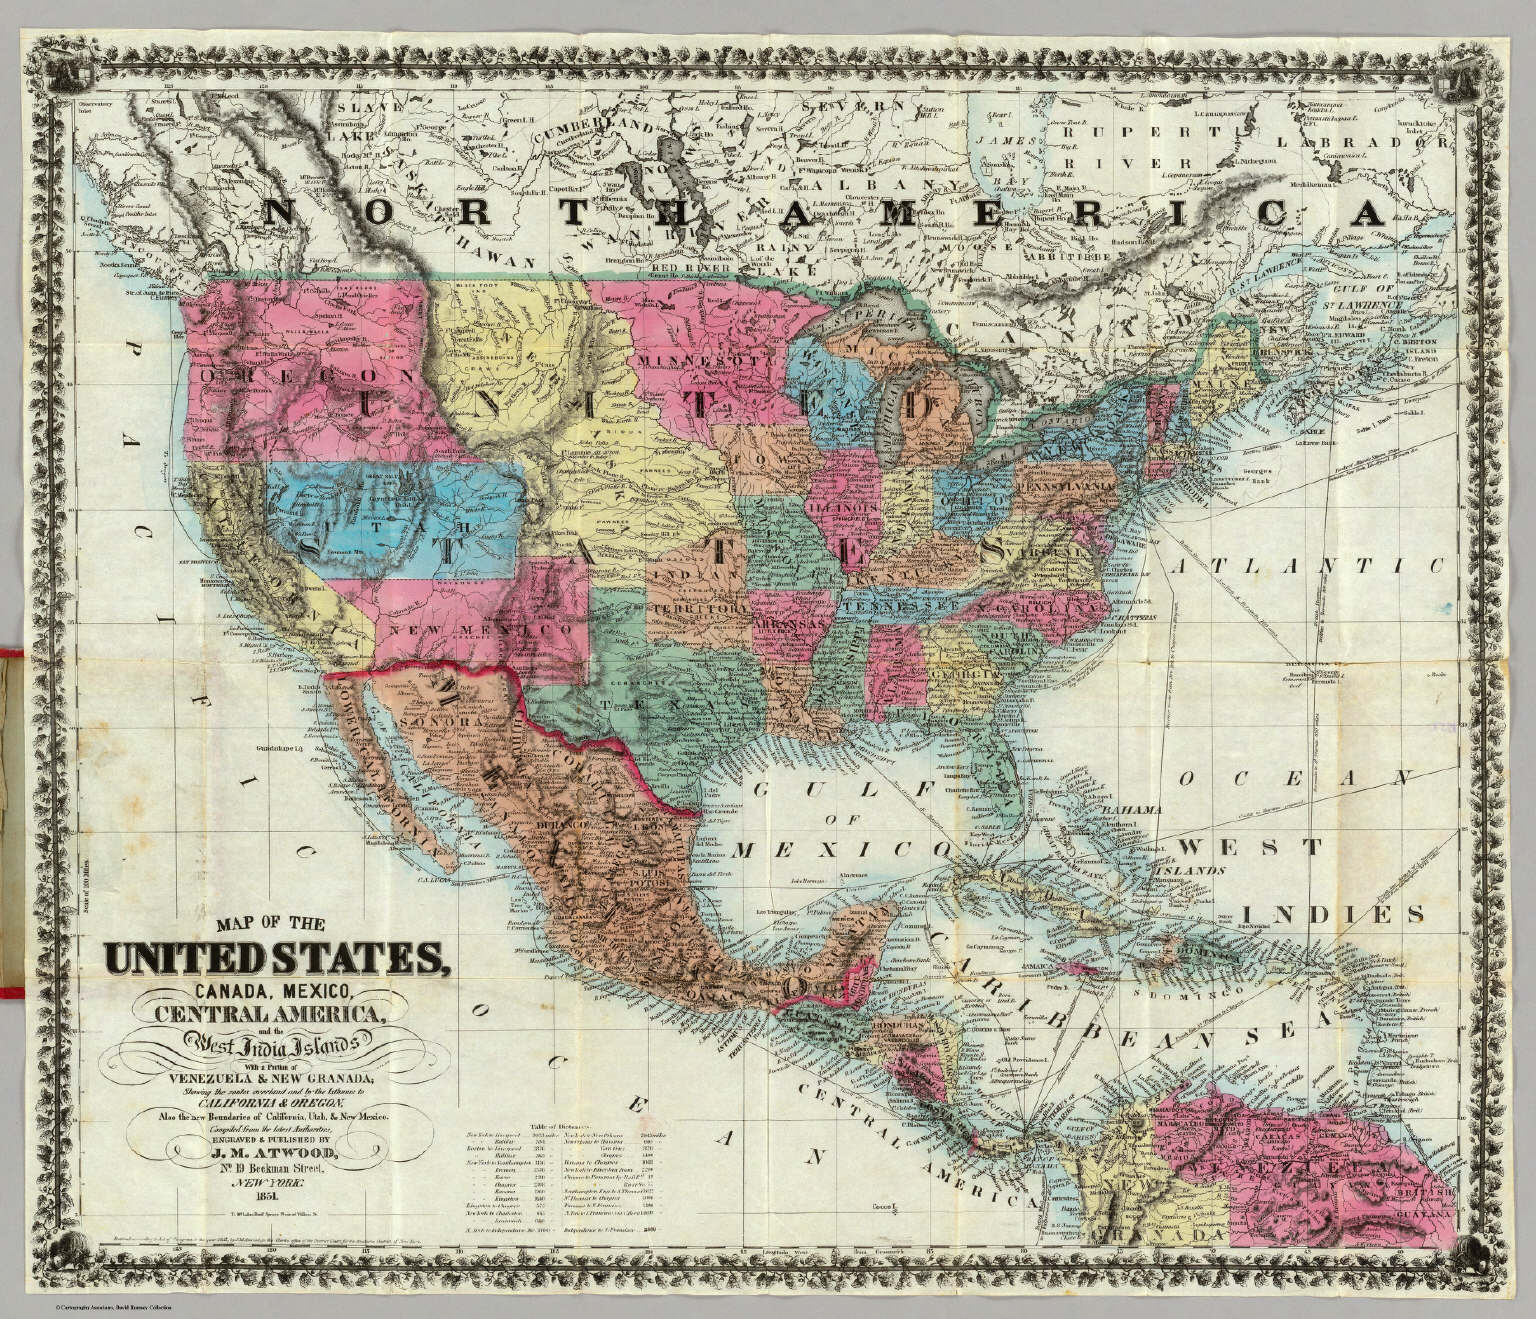 map of the united states canada mexico central america and the west india islands david rumsey historical map collection